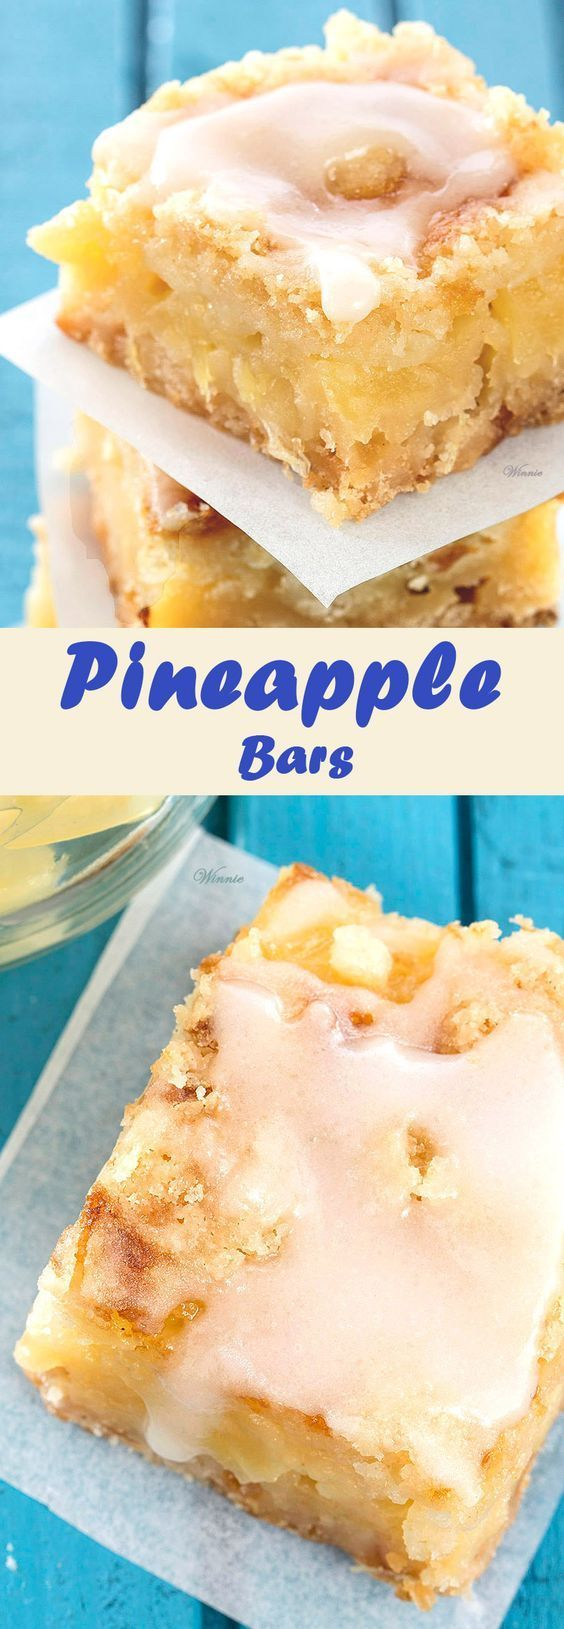 Pineapple Bars.  Very easy to make and super delicious - Pineapple Bars (English version included) http://www.winnish.net/2016/02/8107/